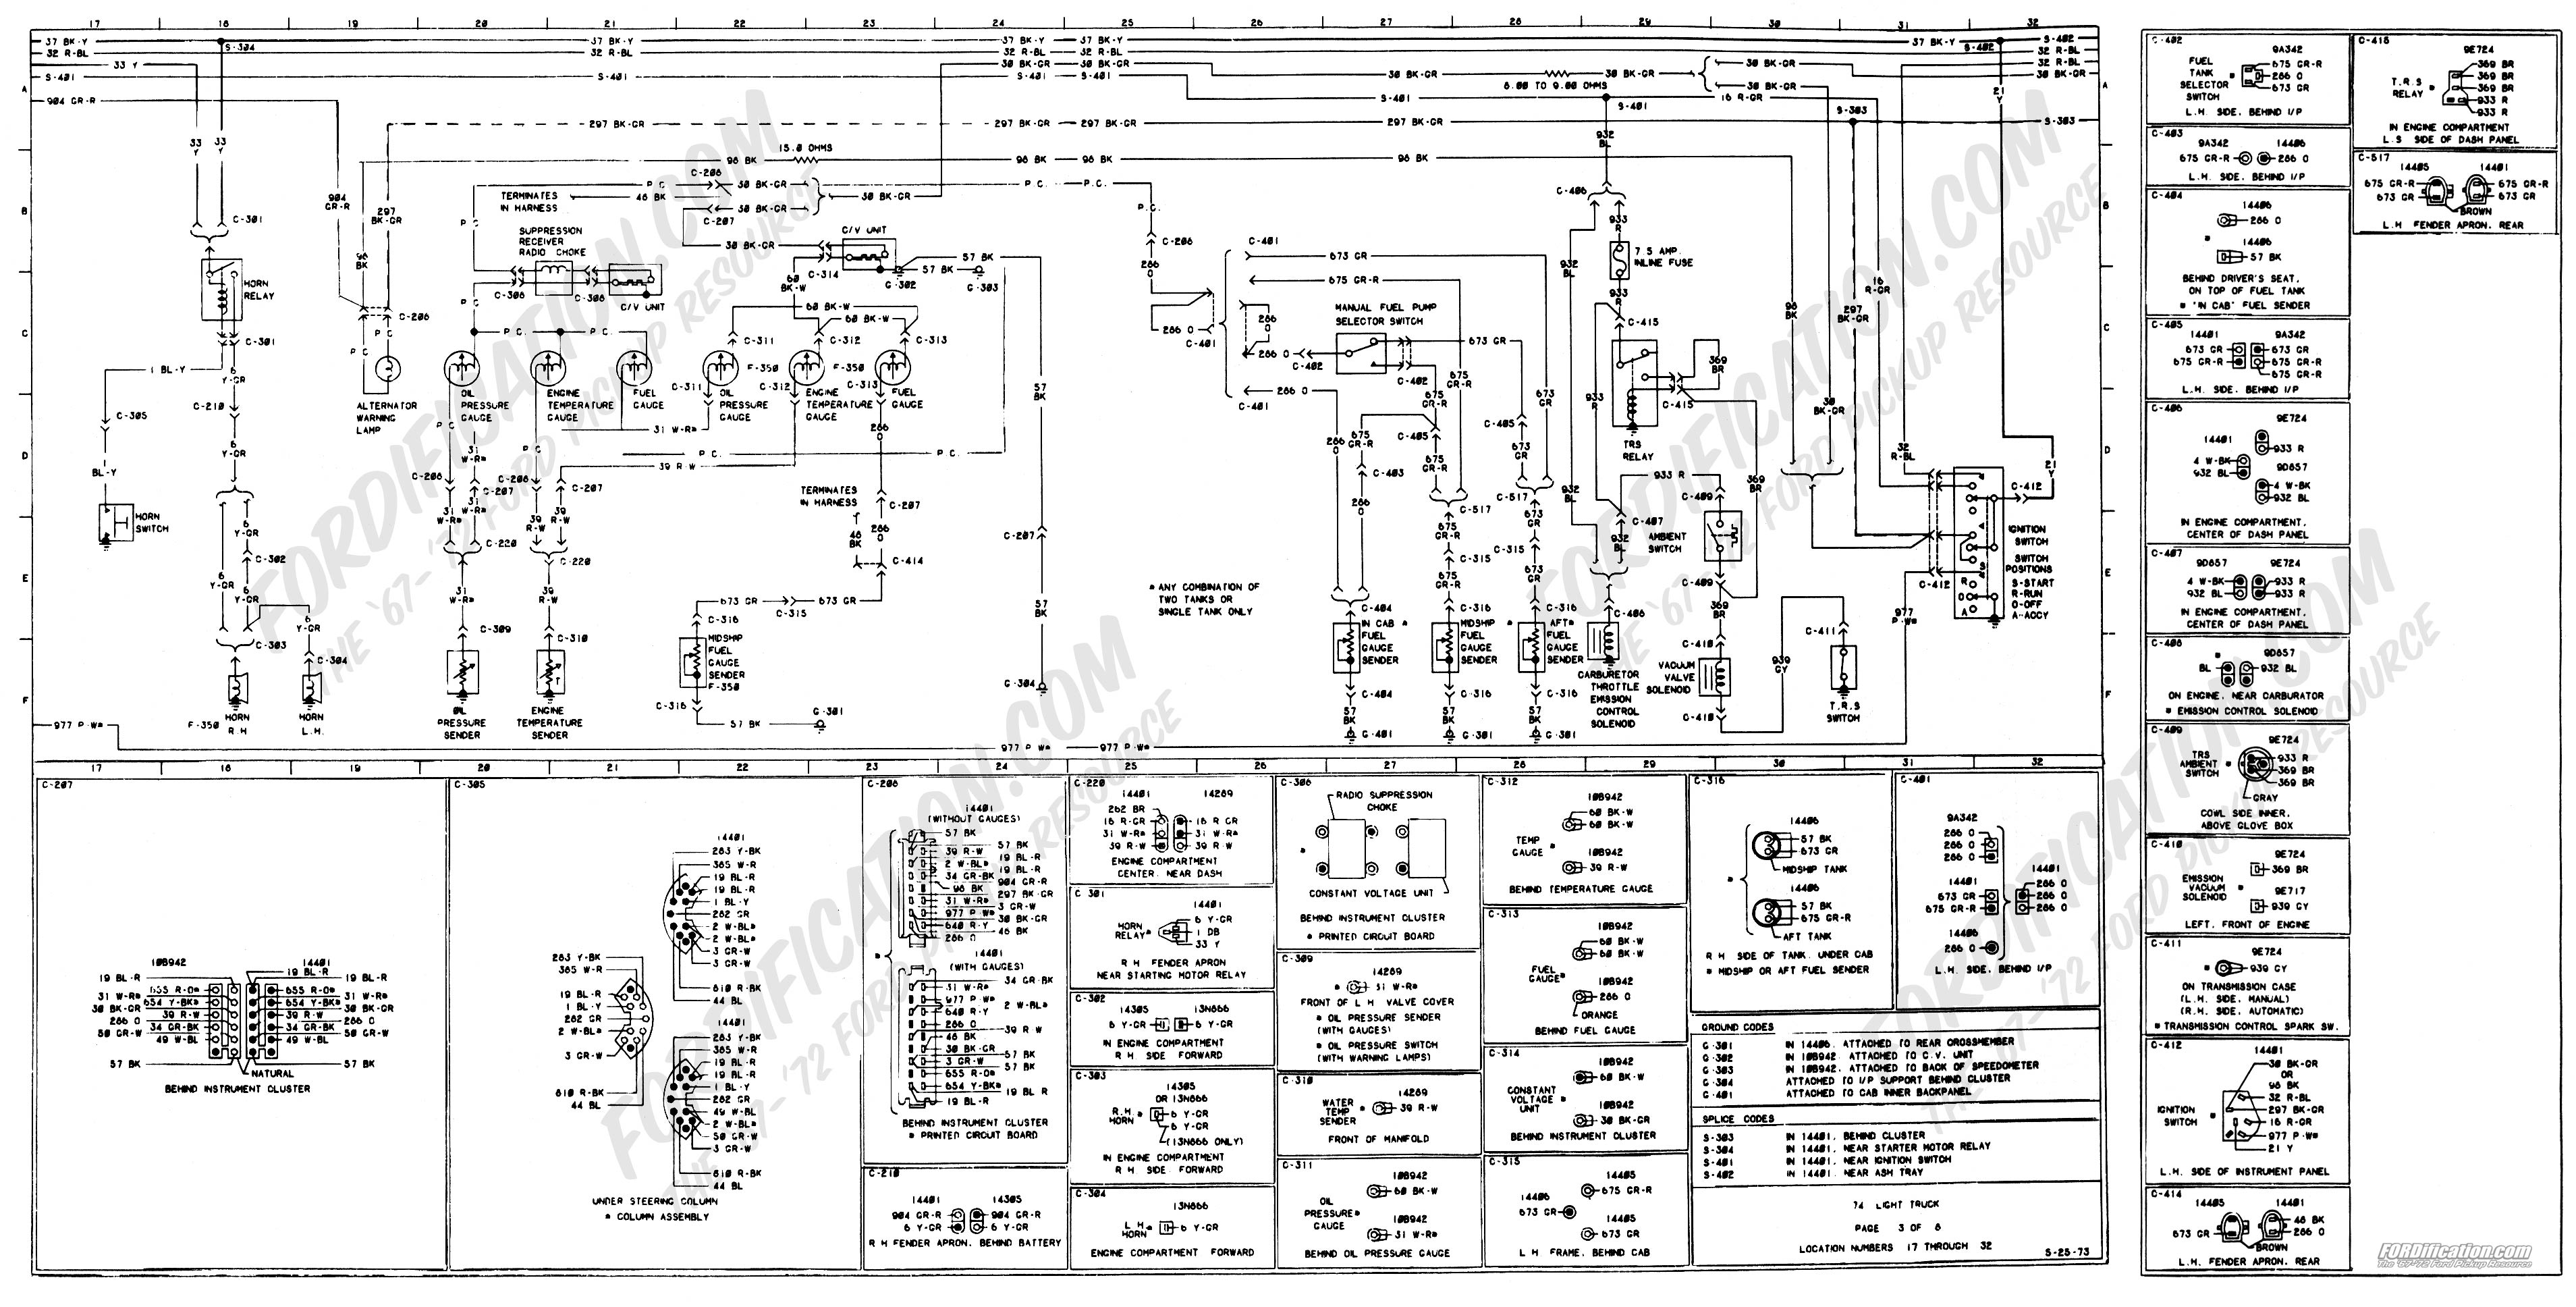 wiring_74master_3of8 1973 1979 ford truck wiring diagrams & schematics fordification net 1979 Corvette Fuse Box Diagram at mifinder.co